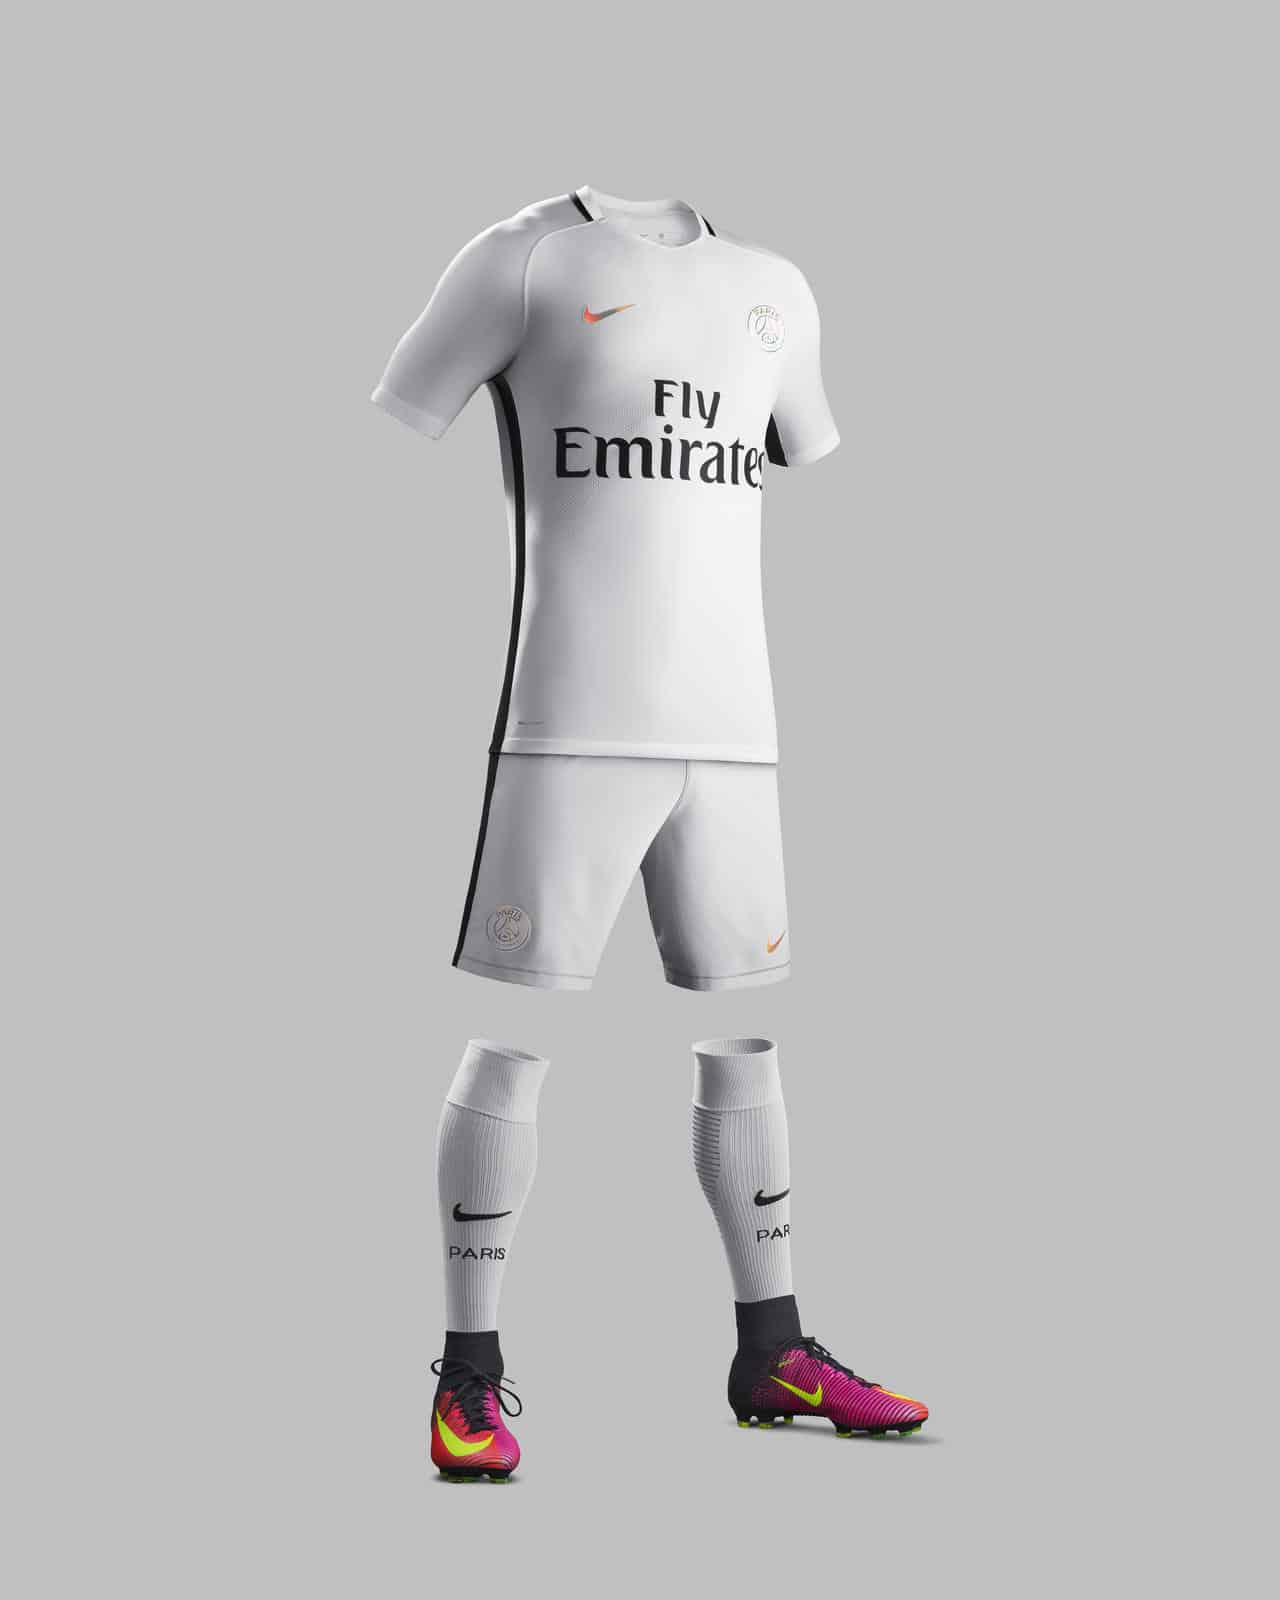 maillot-foot-psg-third-ligue-des-champions-2016-2017-3